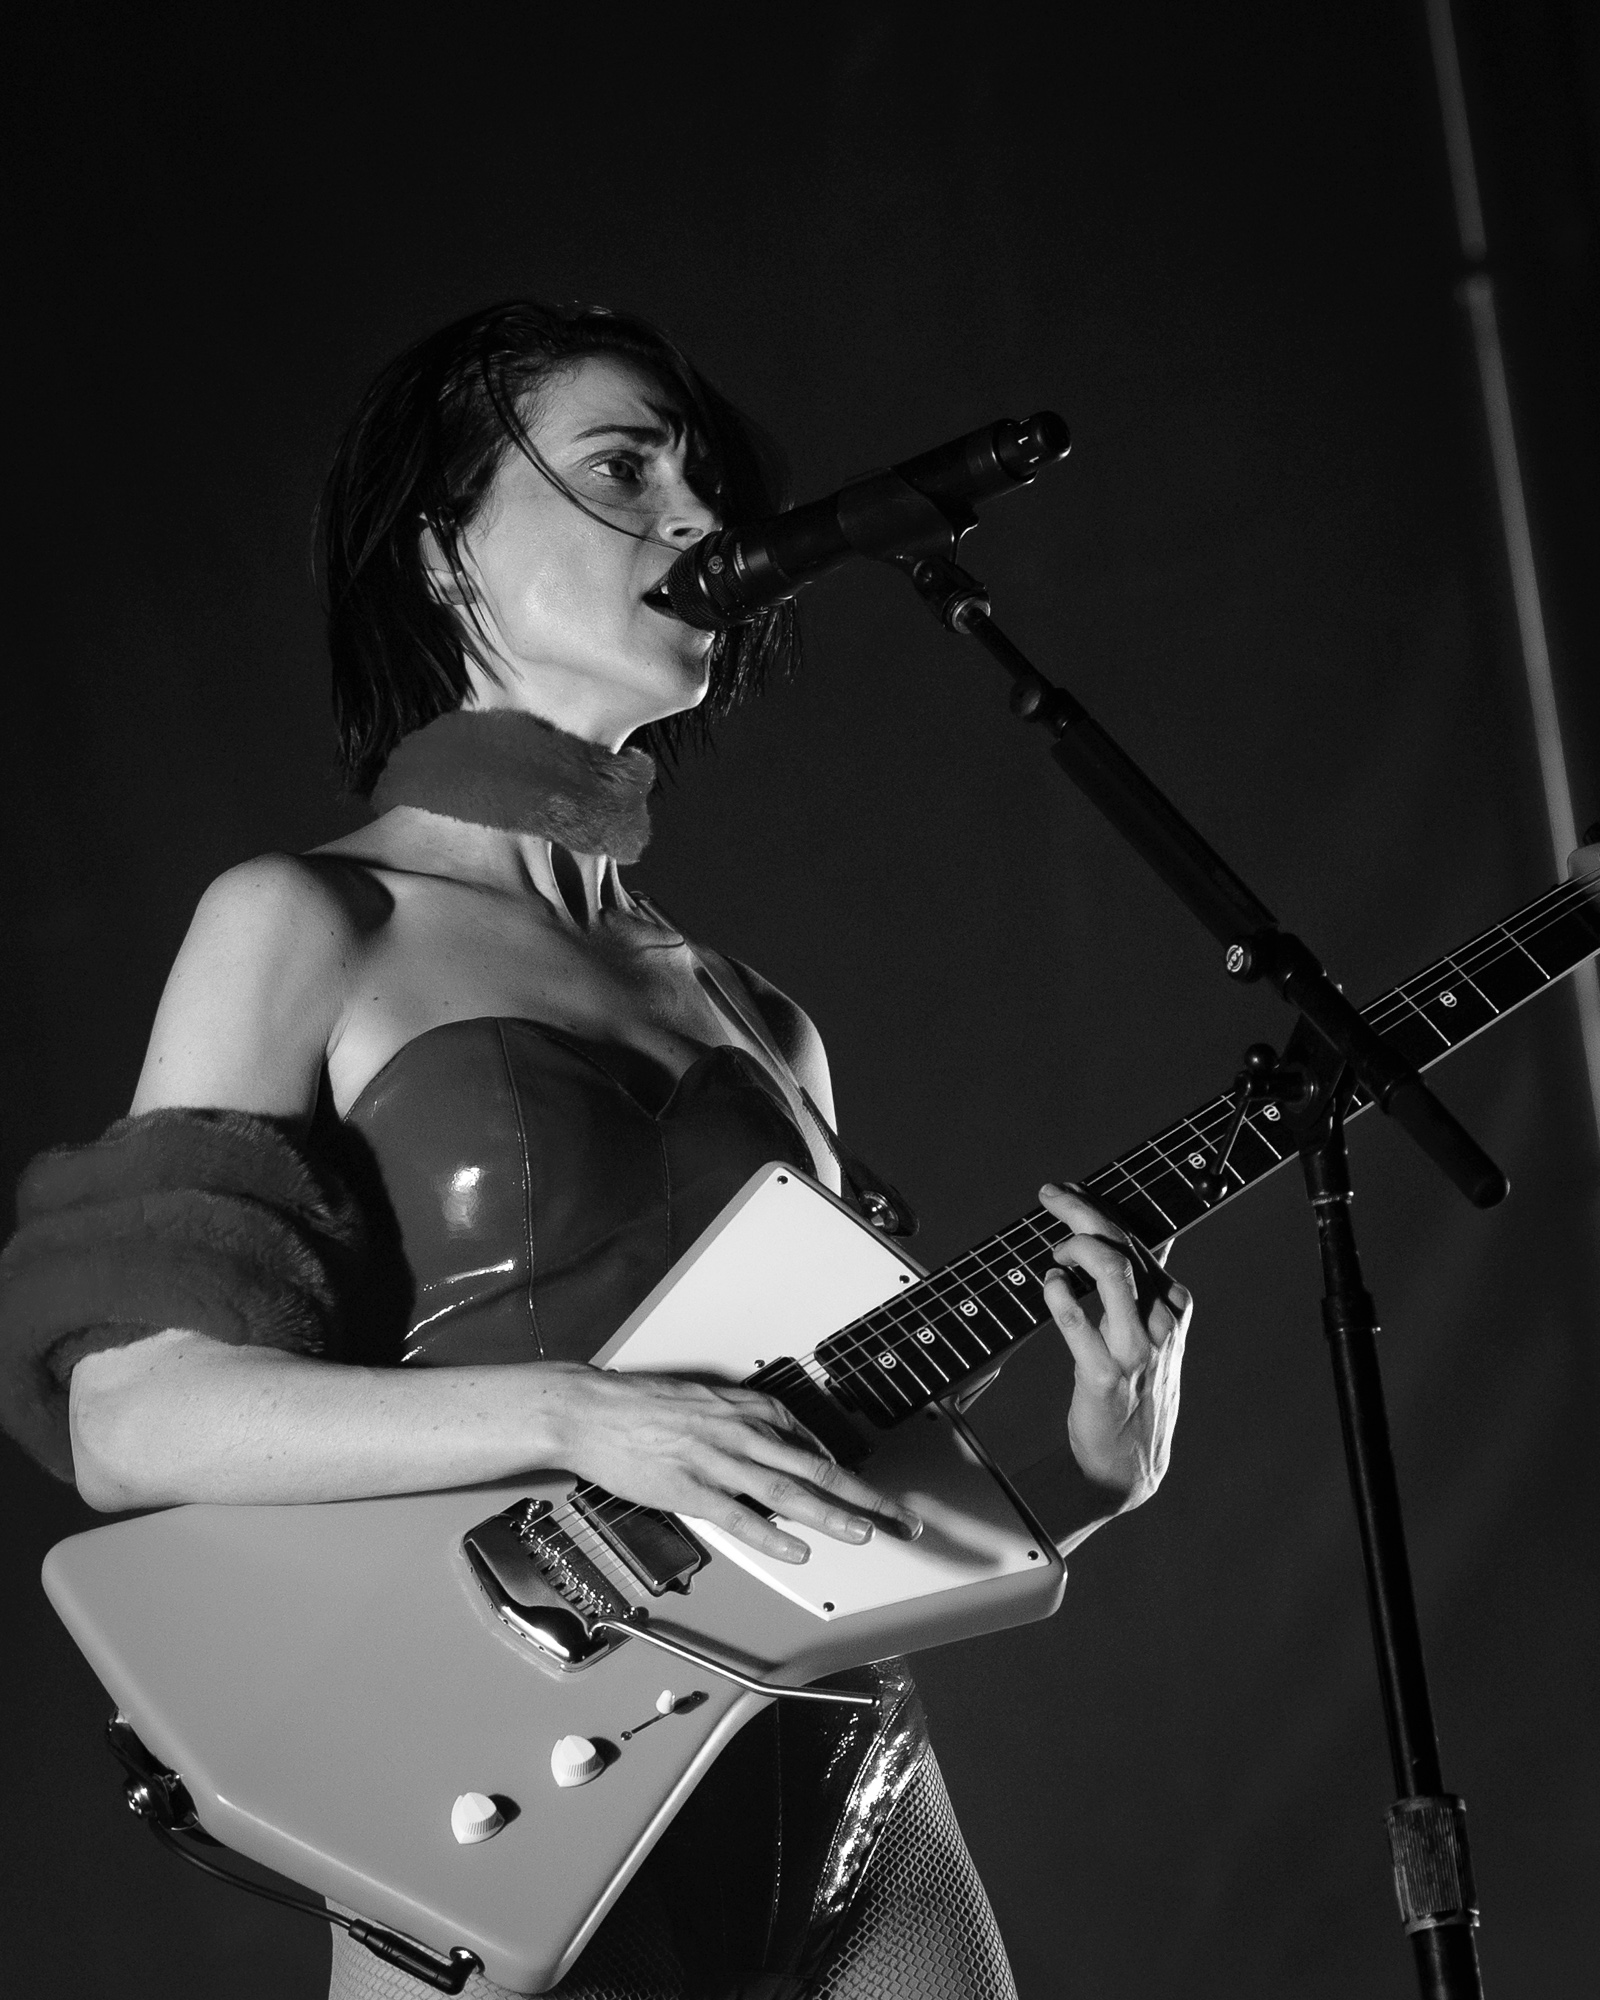 St. Vincent performs during Day for Night Music and Art Festival, Houston, TX. December 17, 2017